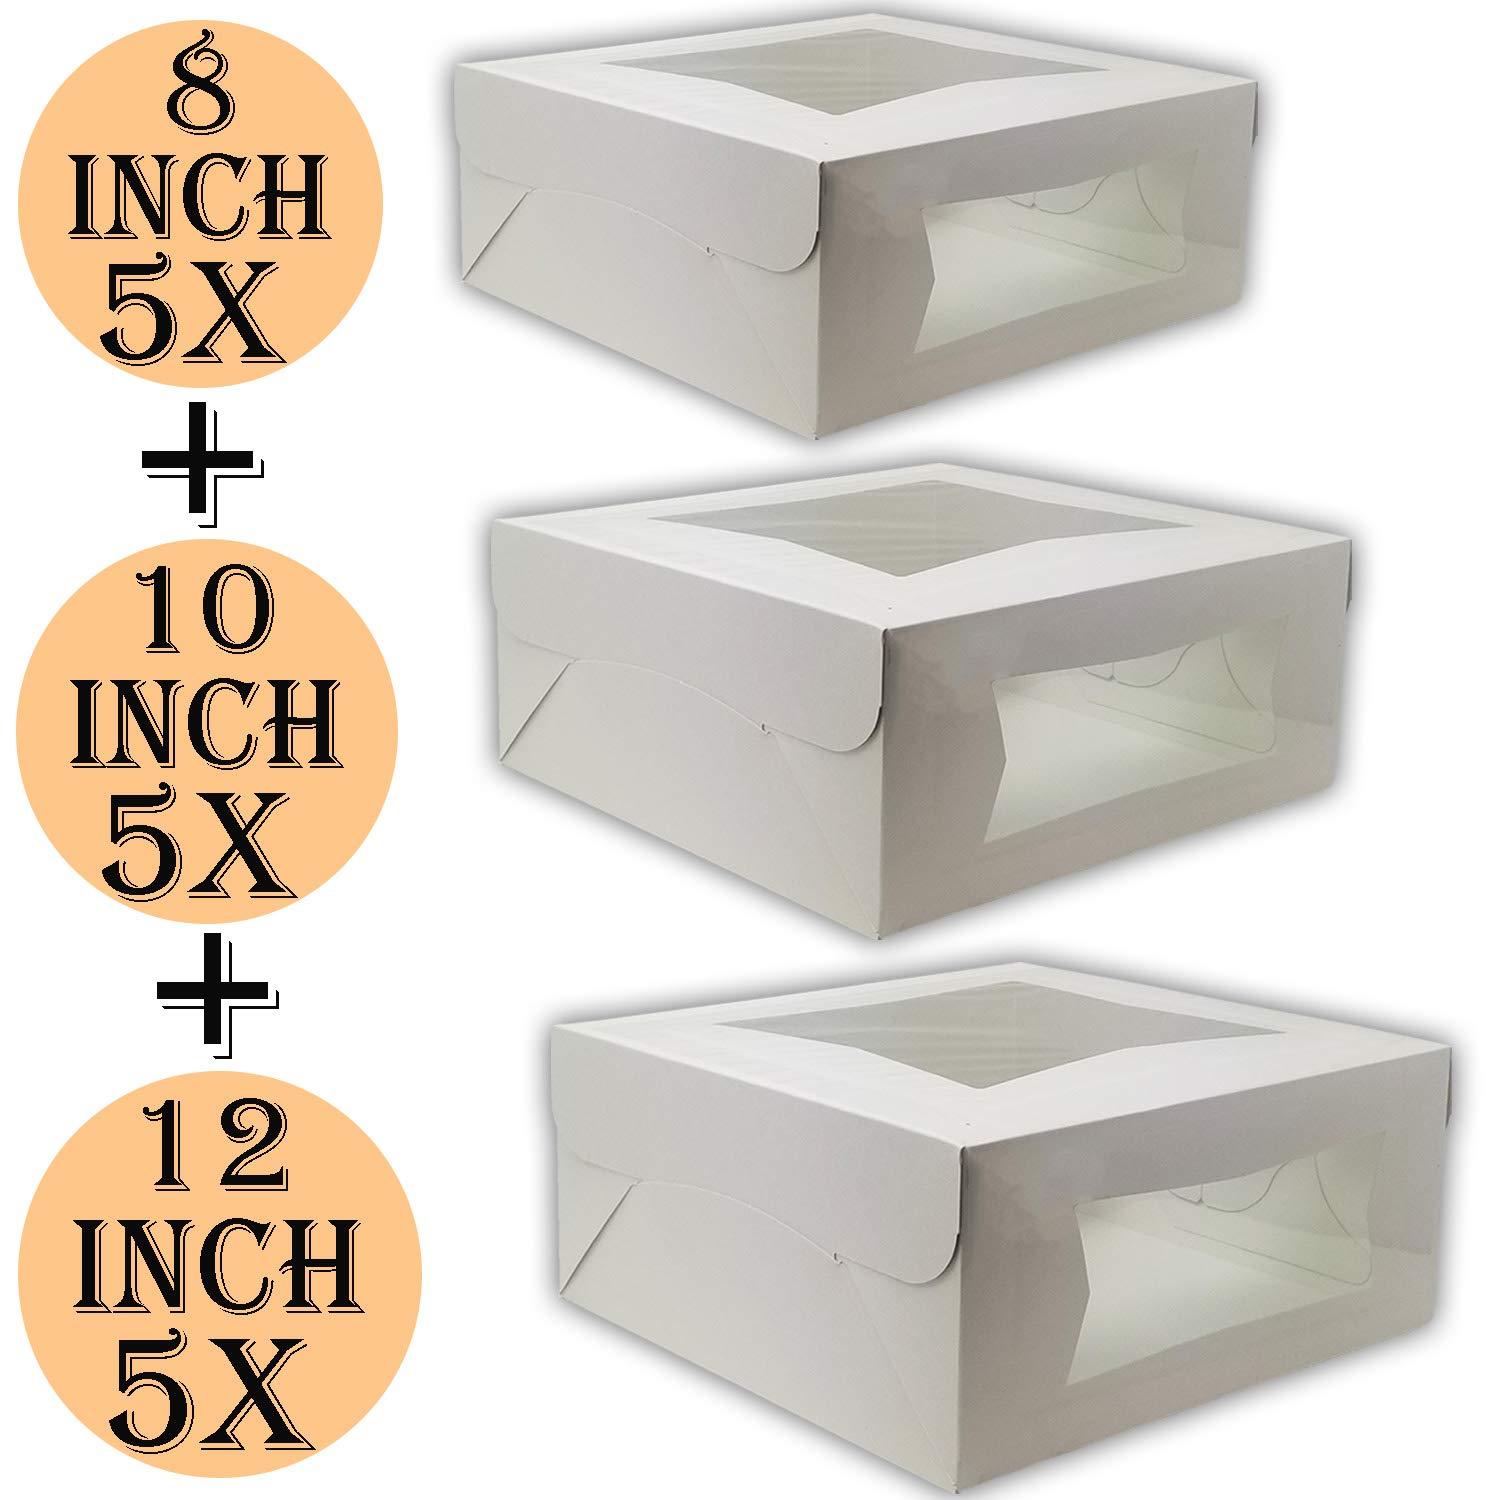 Cake Boxes 12 x 12 x 5, Cake Boxes 10 x 10 x 5 and Cake Boxes 8 x 8 x 4, Bakery Box Has Double Window, Cake Supplies, 5 Pack of Each. by HeroFiber